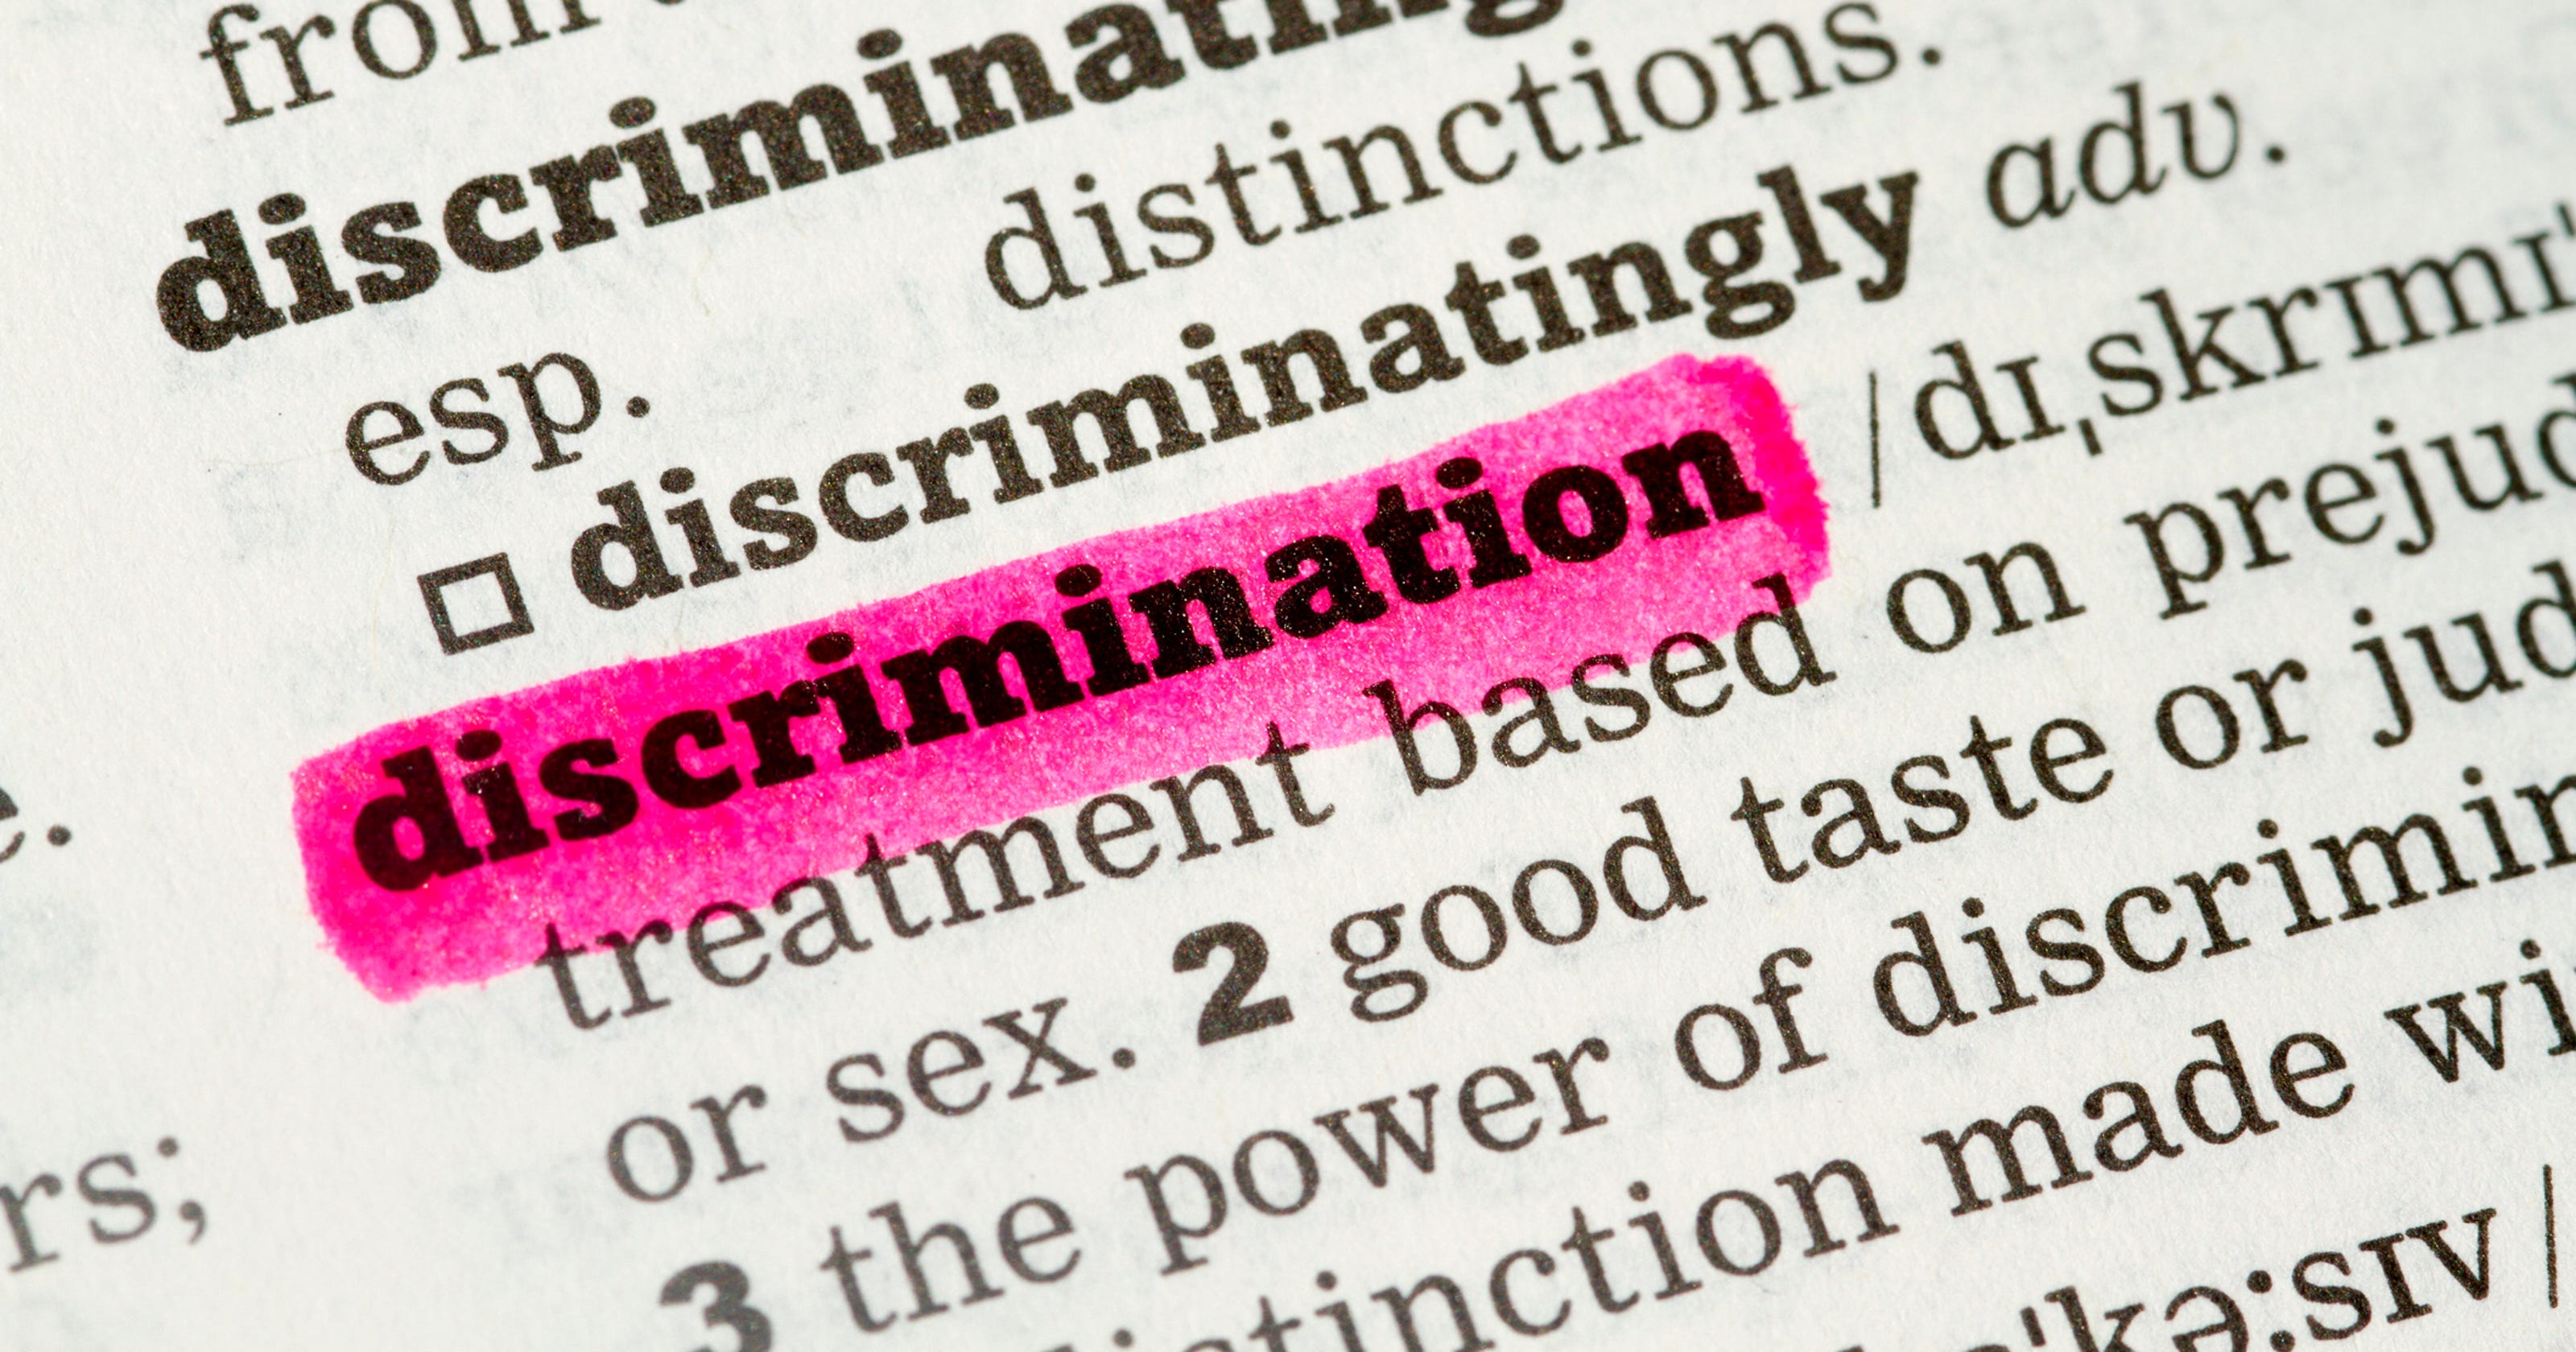 How a company got away with employment discrimination